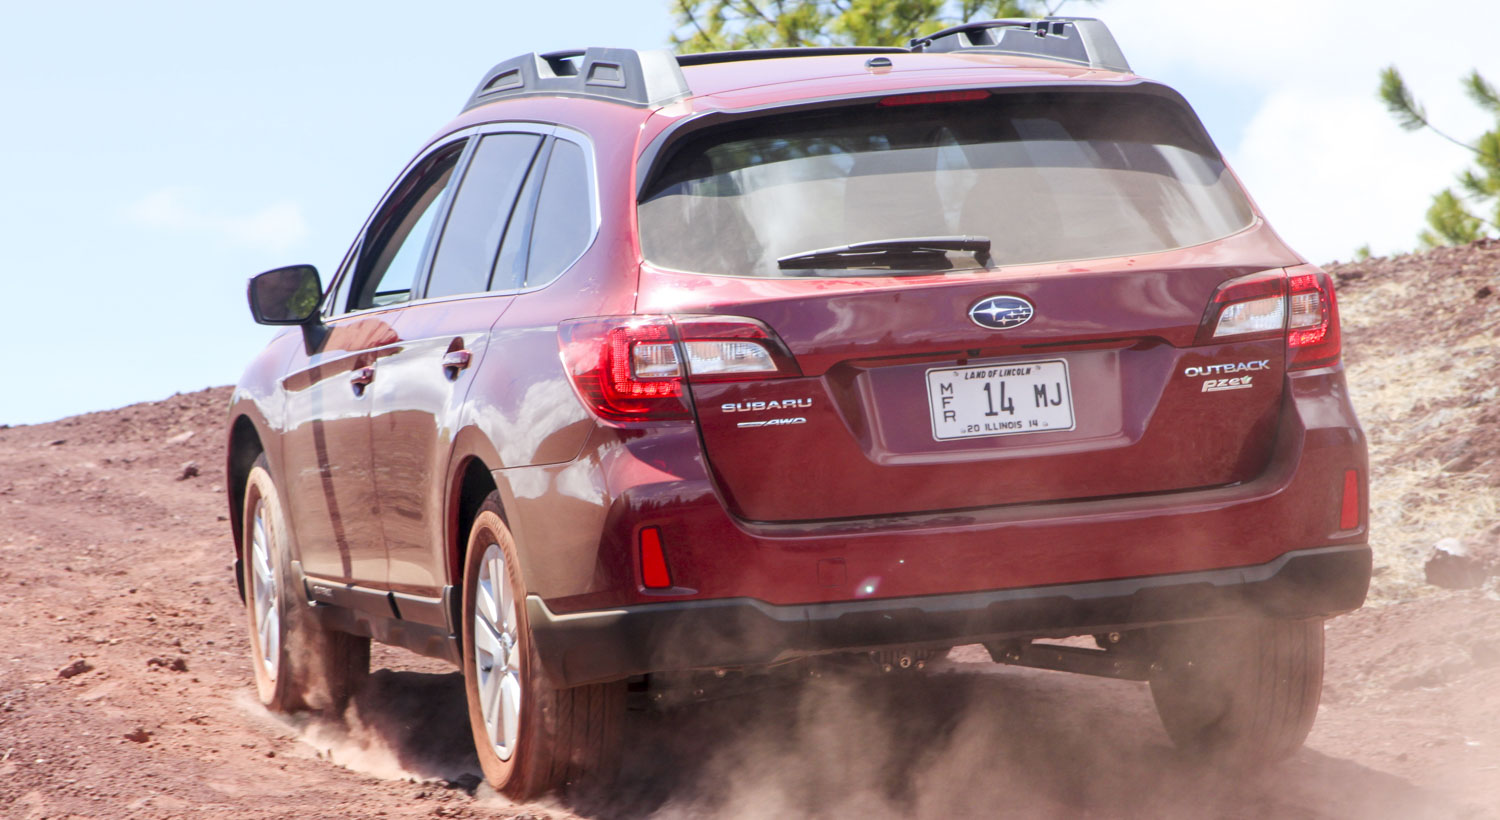 2015 Subaru Outback (c) Perry Stern